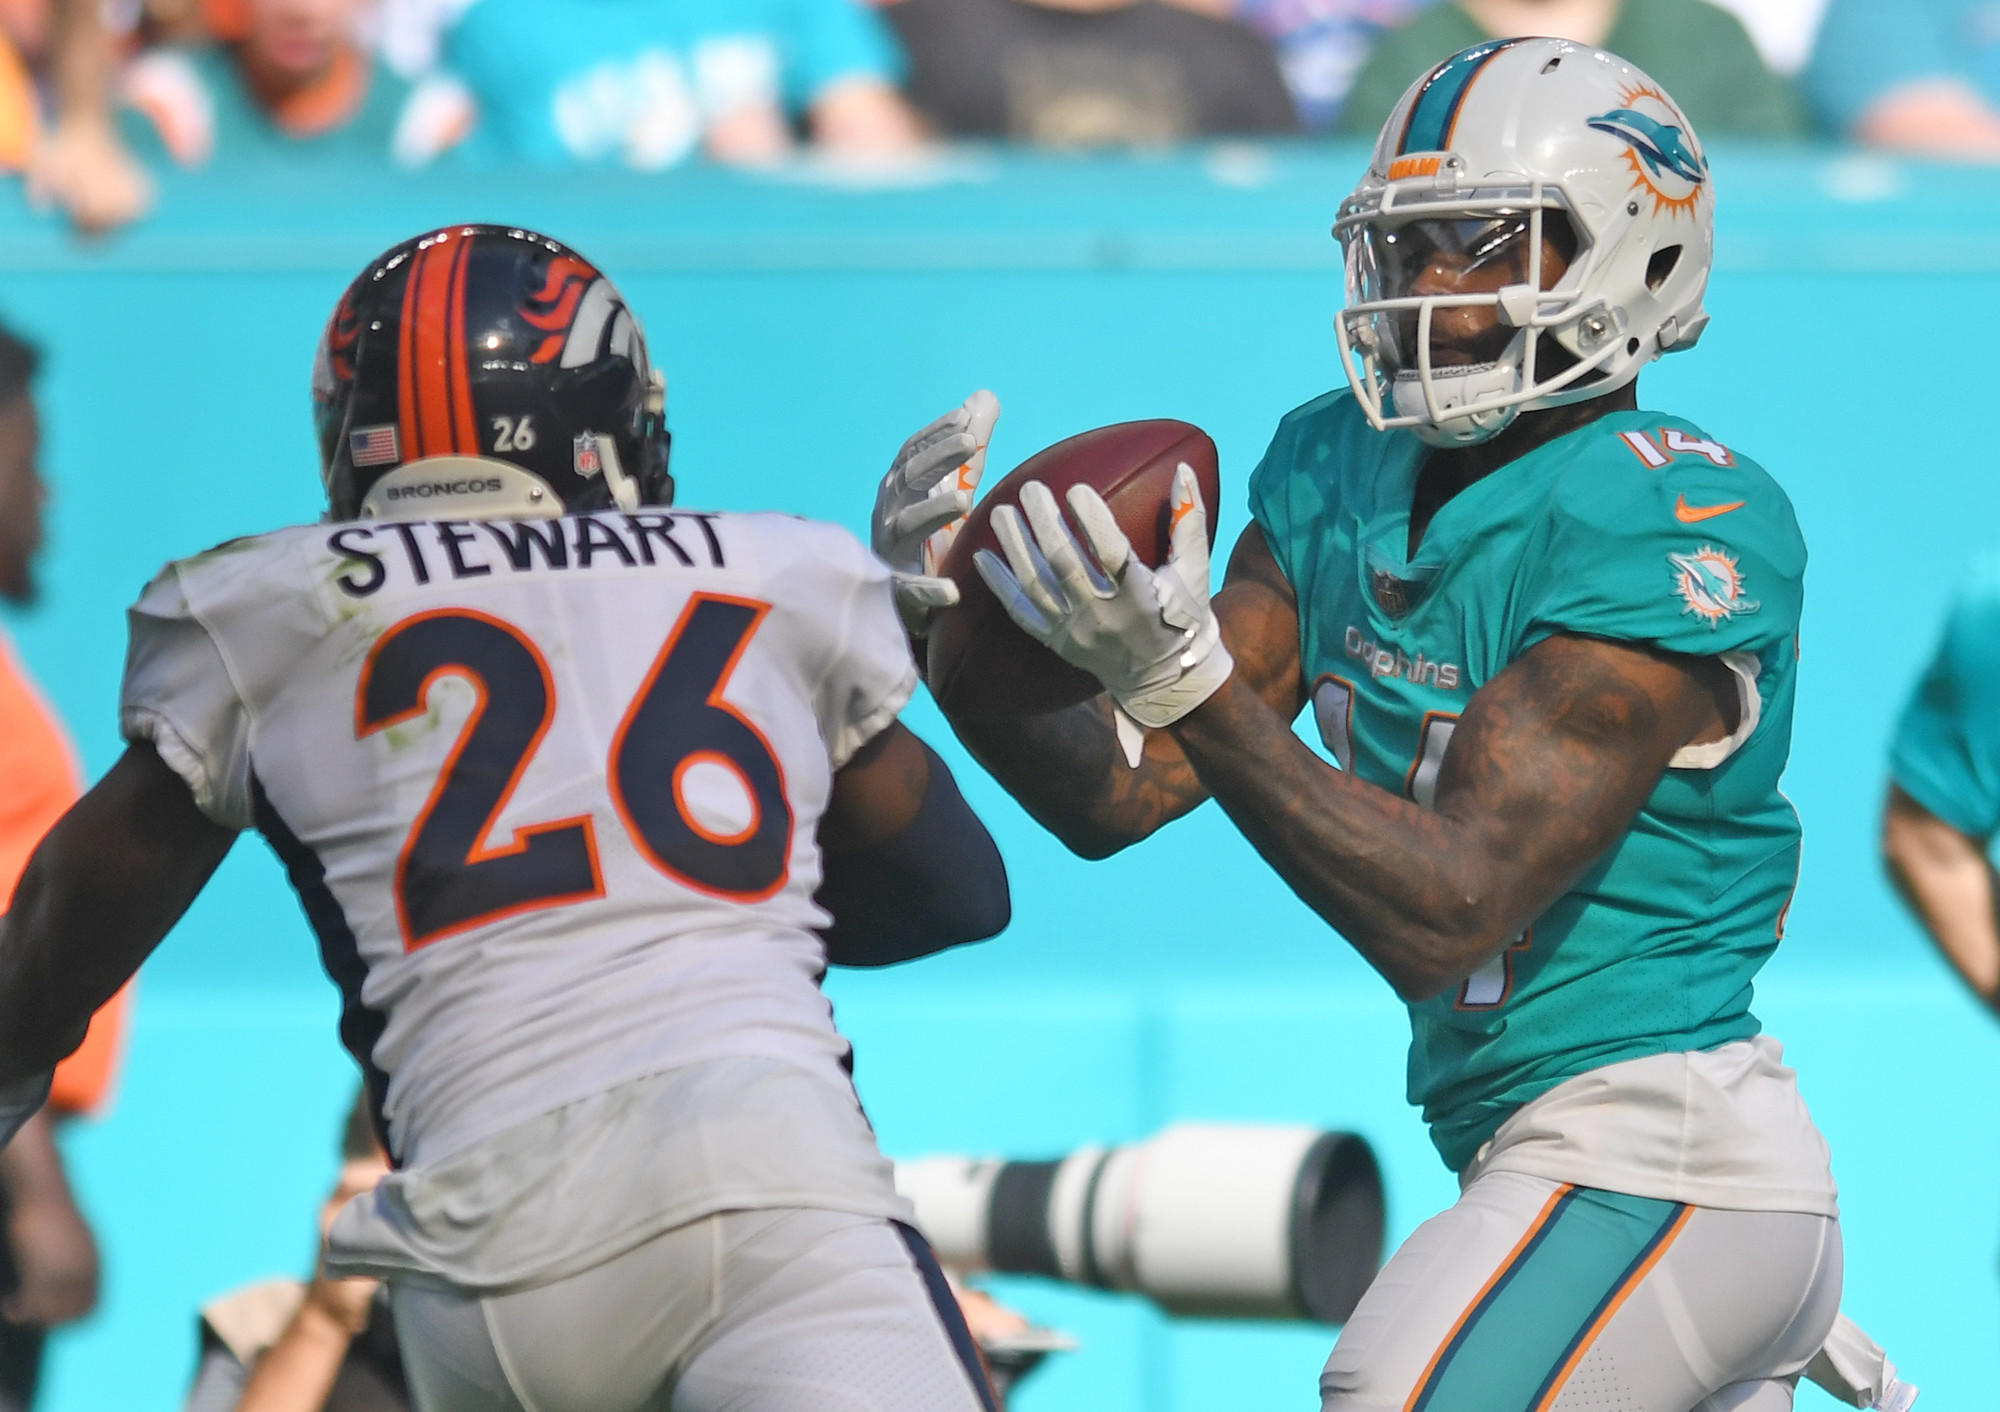 Fl-sp-dolphins-notes-20171207